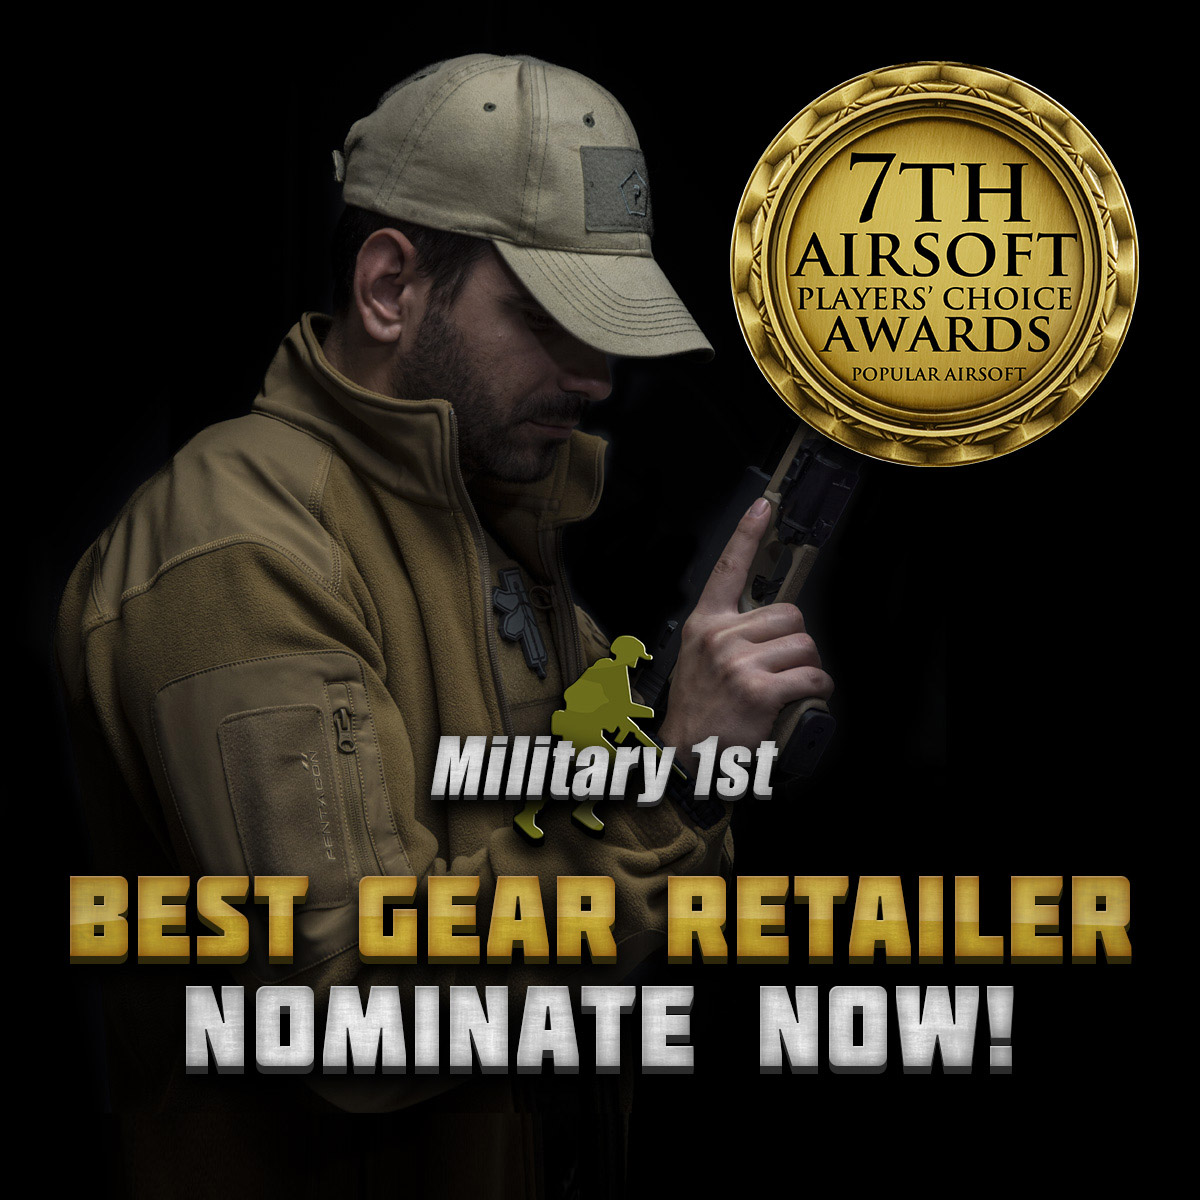 7th Airsoft Players Choice Awards - Nominations